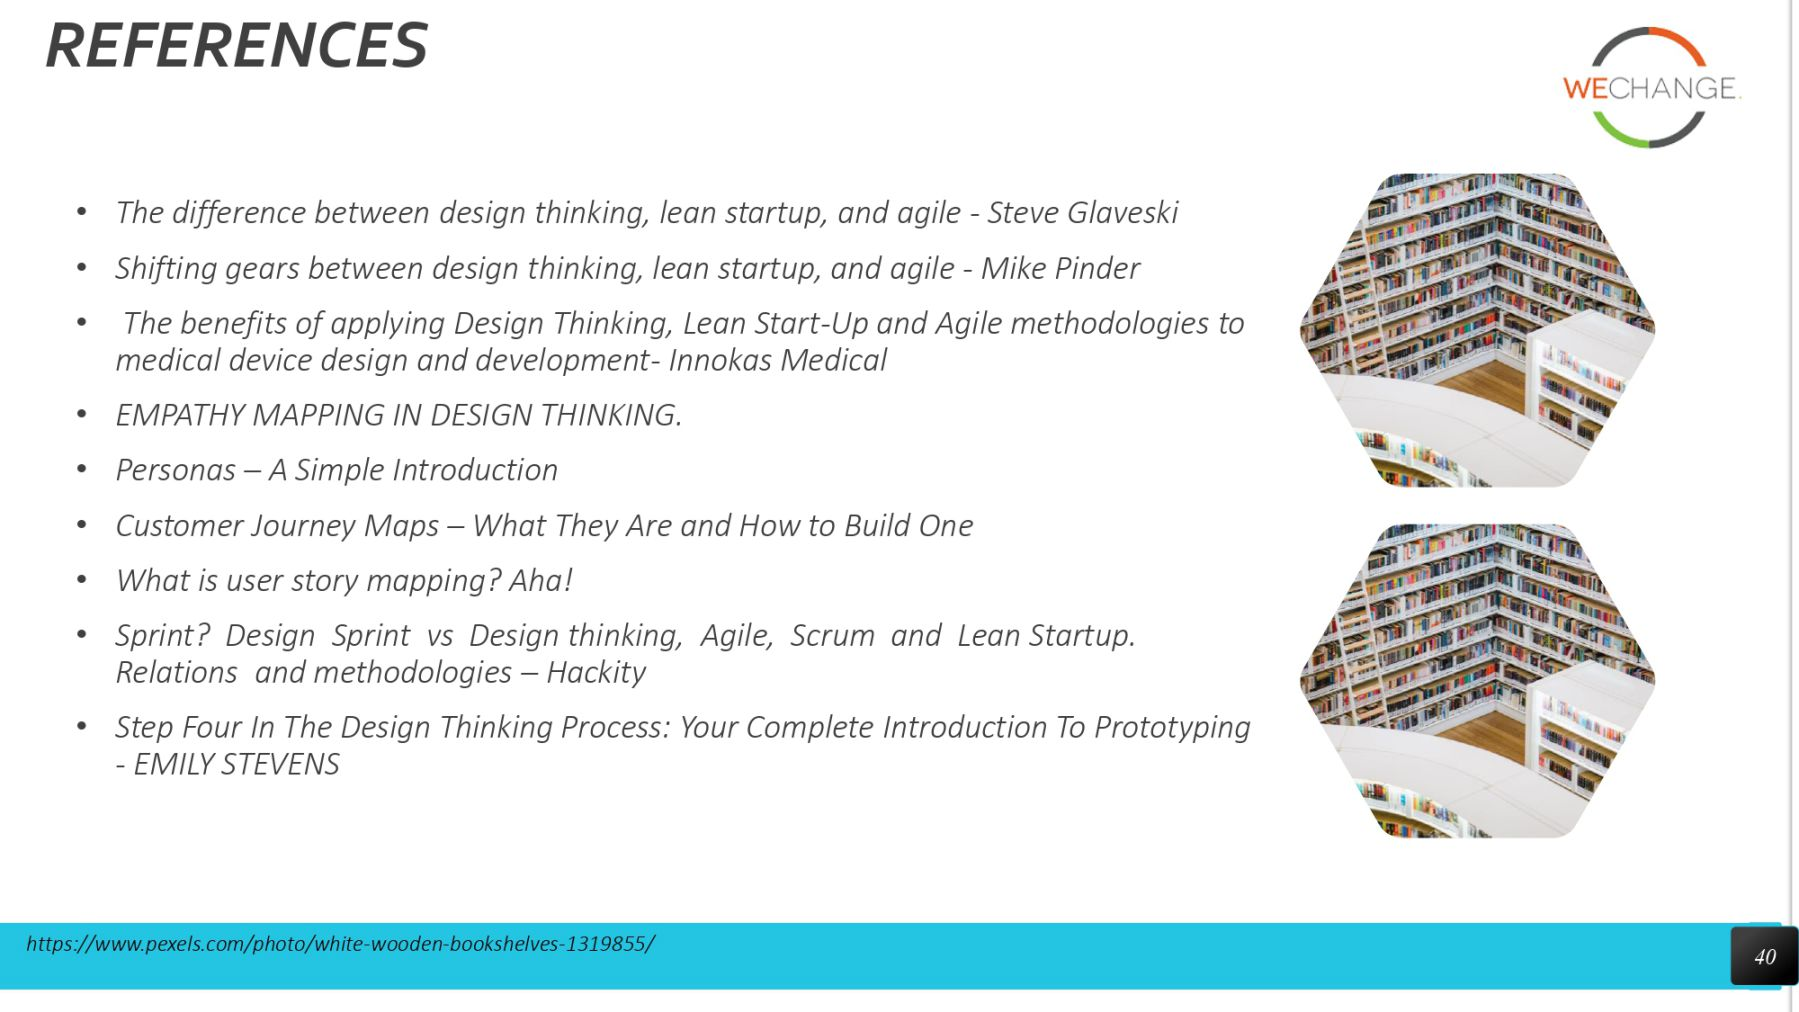 Design thinking lean startup and agile page 0030 compressed Design thinking lean startup and agile